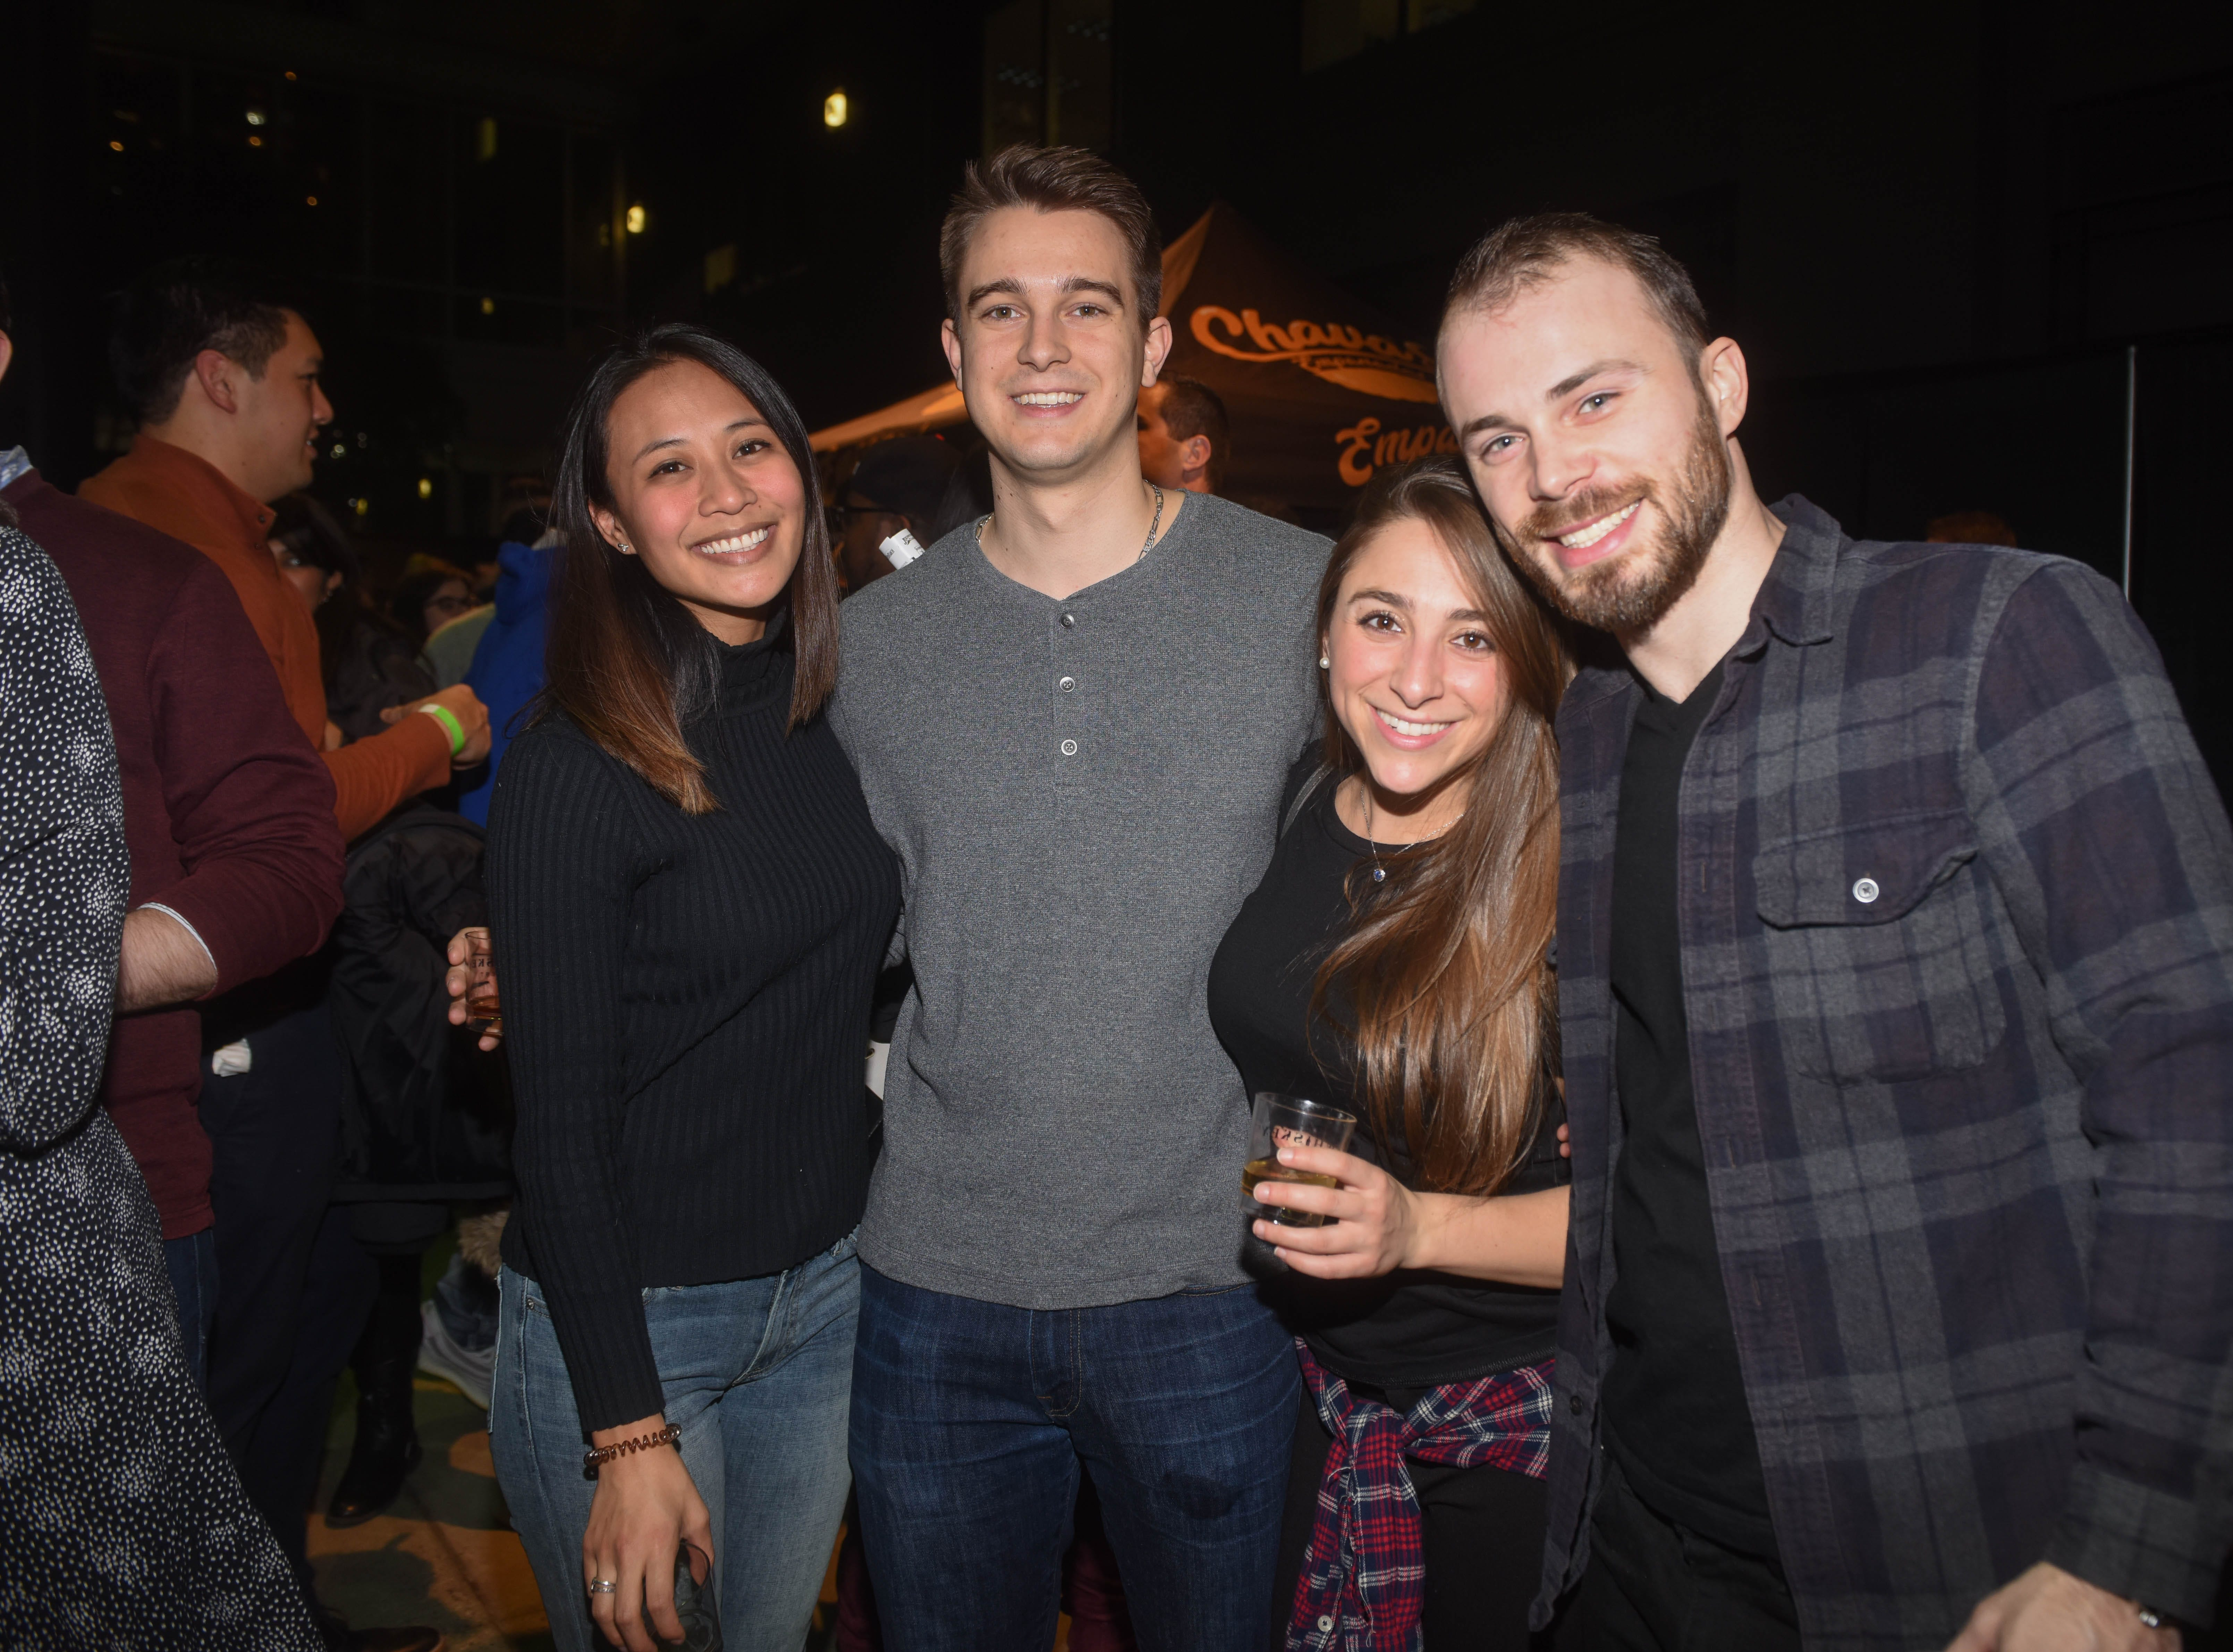 Aileen, Domenic, Alex and James. Jersey City Whiskey Fest was held at Harborside Atrium. The event featured over 100 styles of whiskey and spirits. 02/01/2019